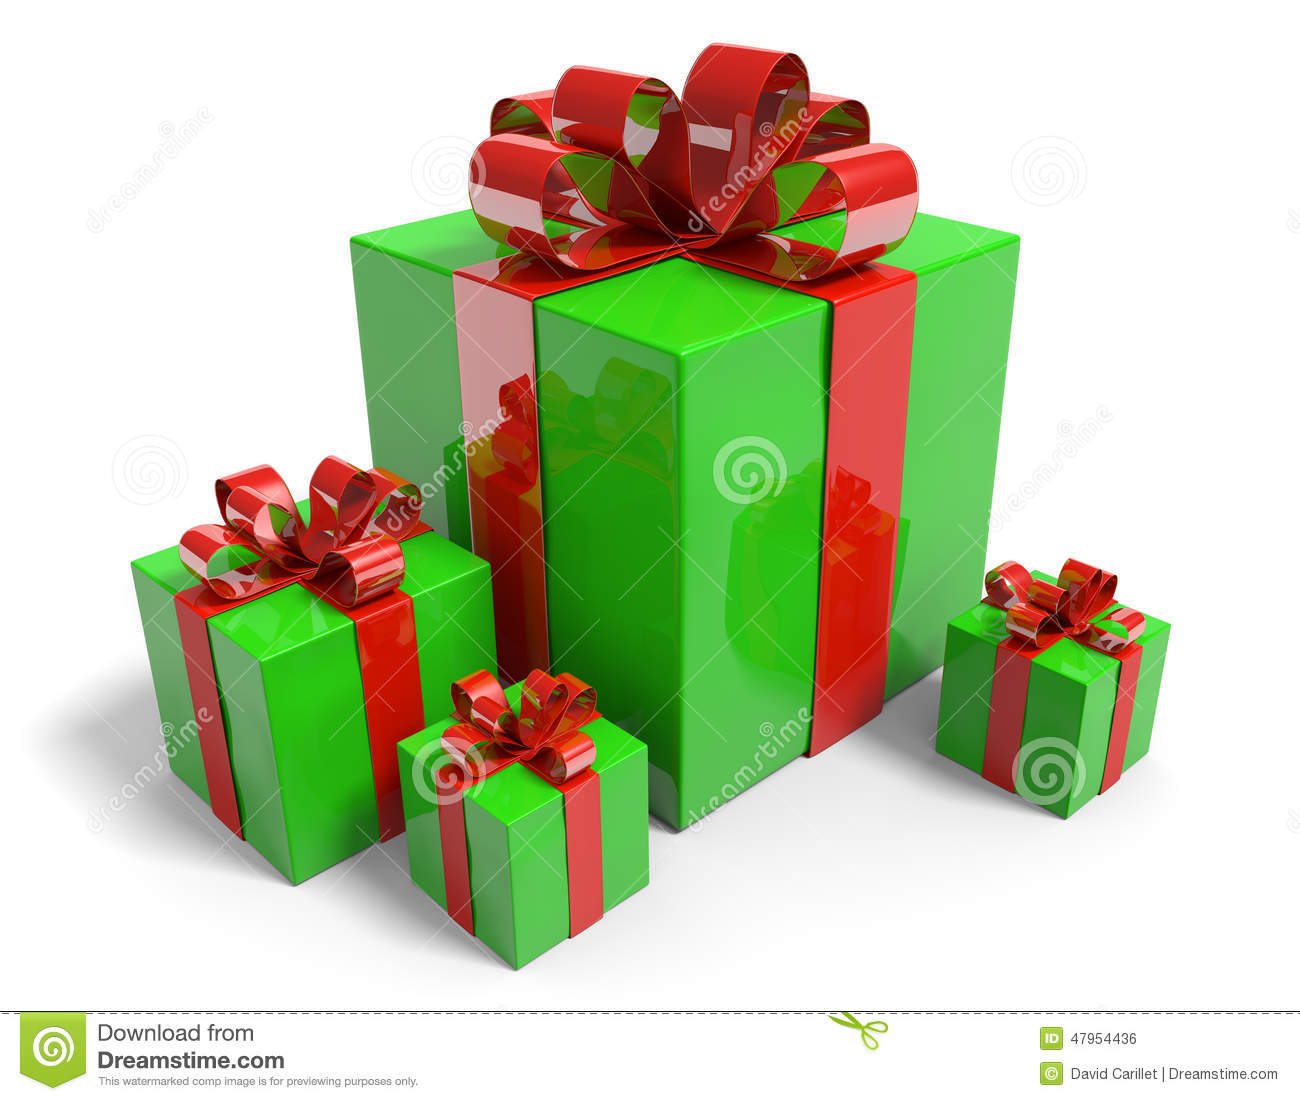 Christmas presents in gift boxes with shiny green wrapping